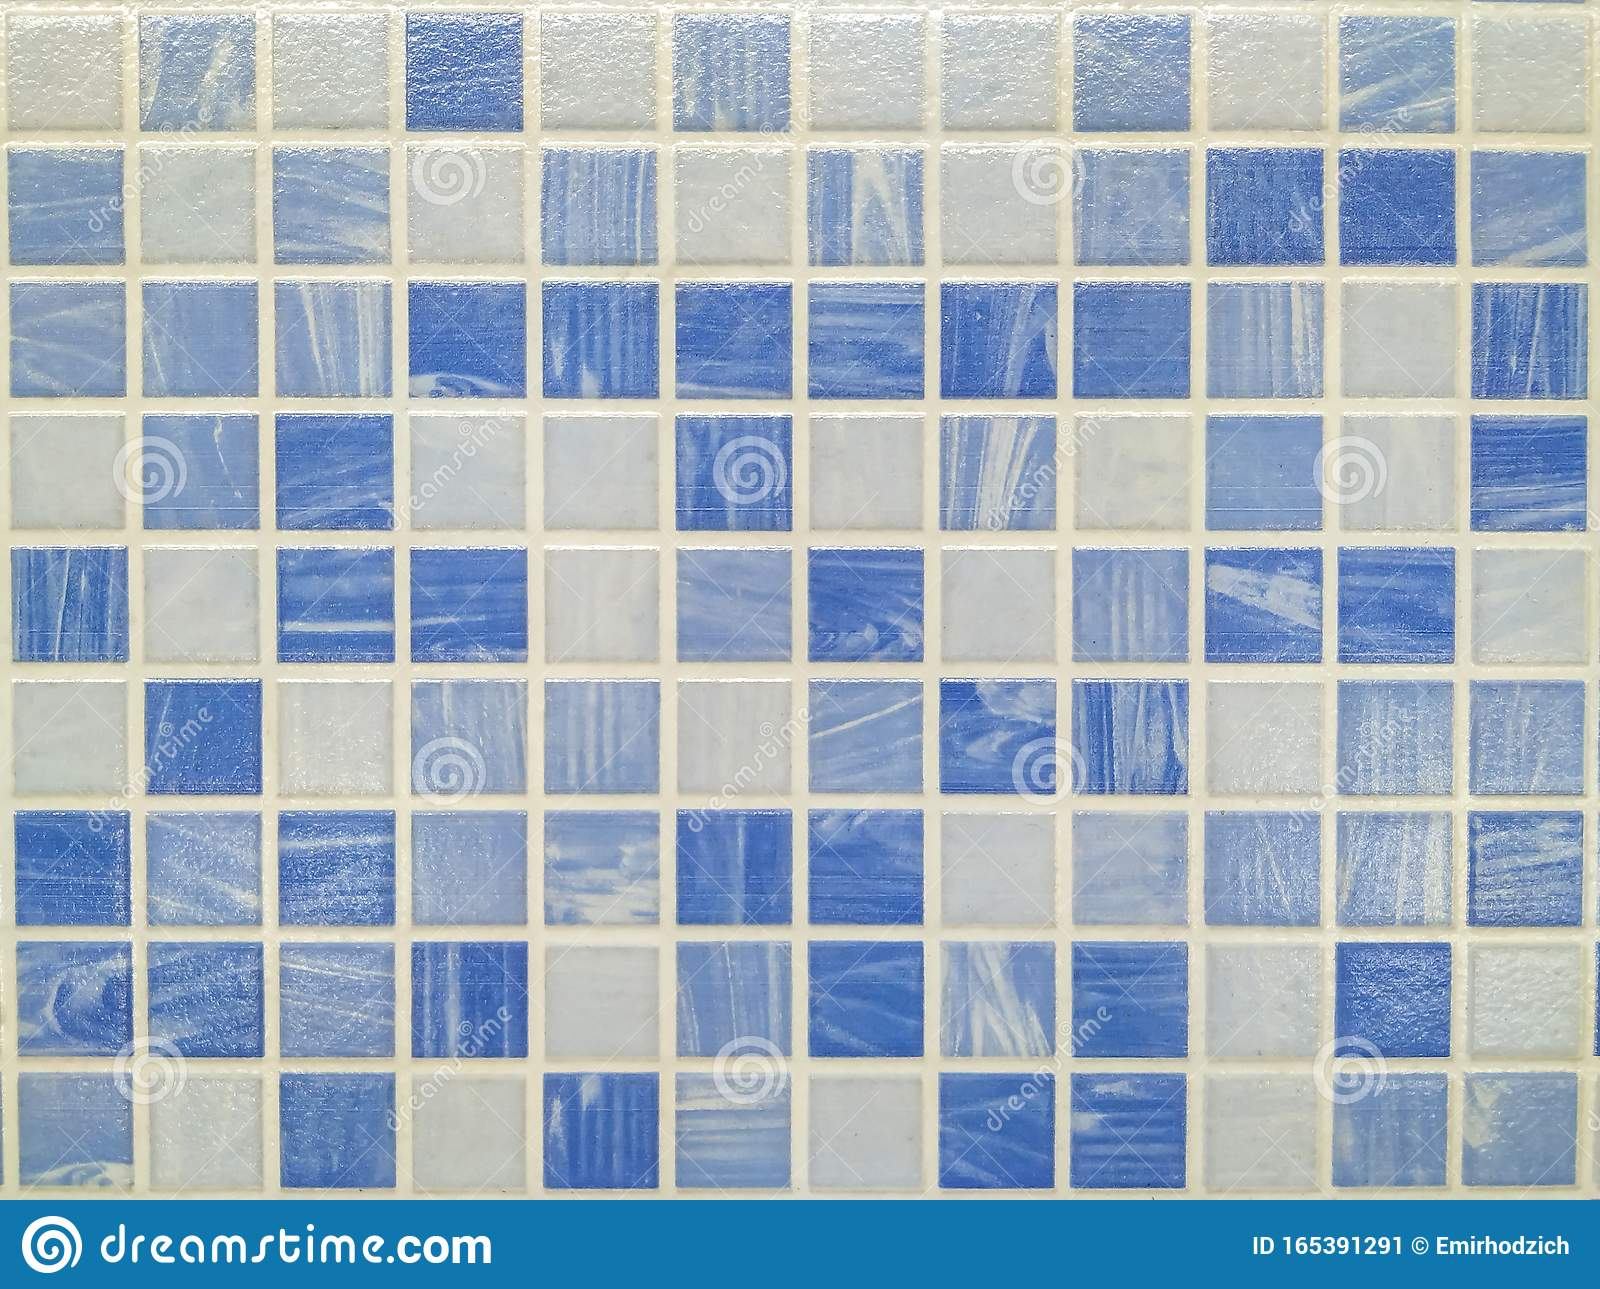 Small Bathroom Or Kitchen Tiles In Blue And White Colors Making An Interesting Textured Pattern Of Ceramics On The Wall Or Floor Stock Image Image Of Construction Floor 165391291